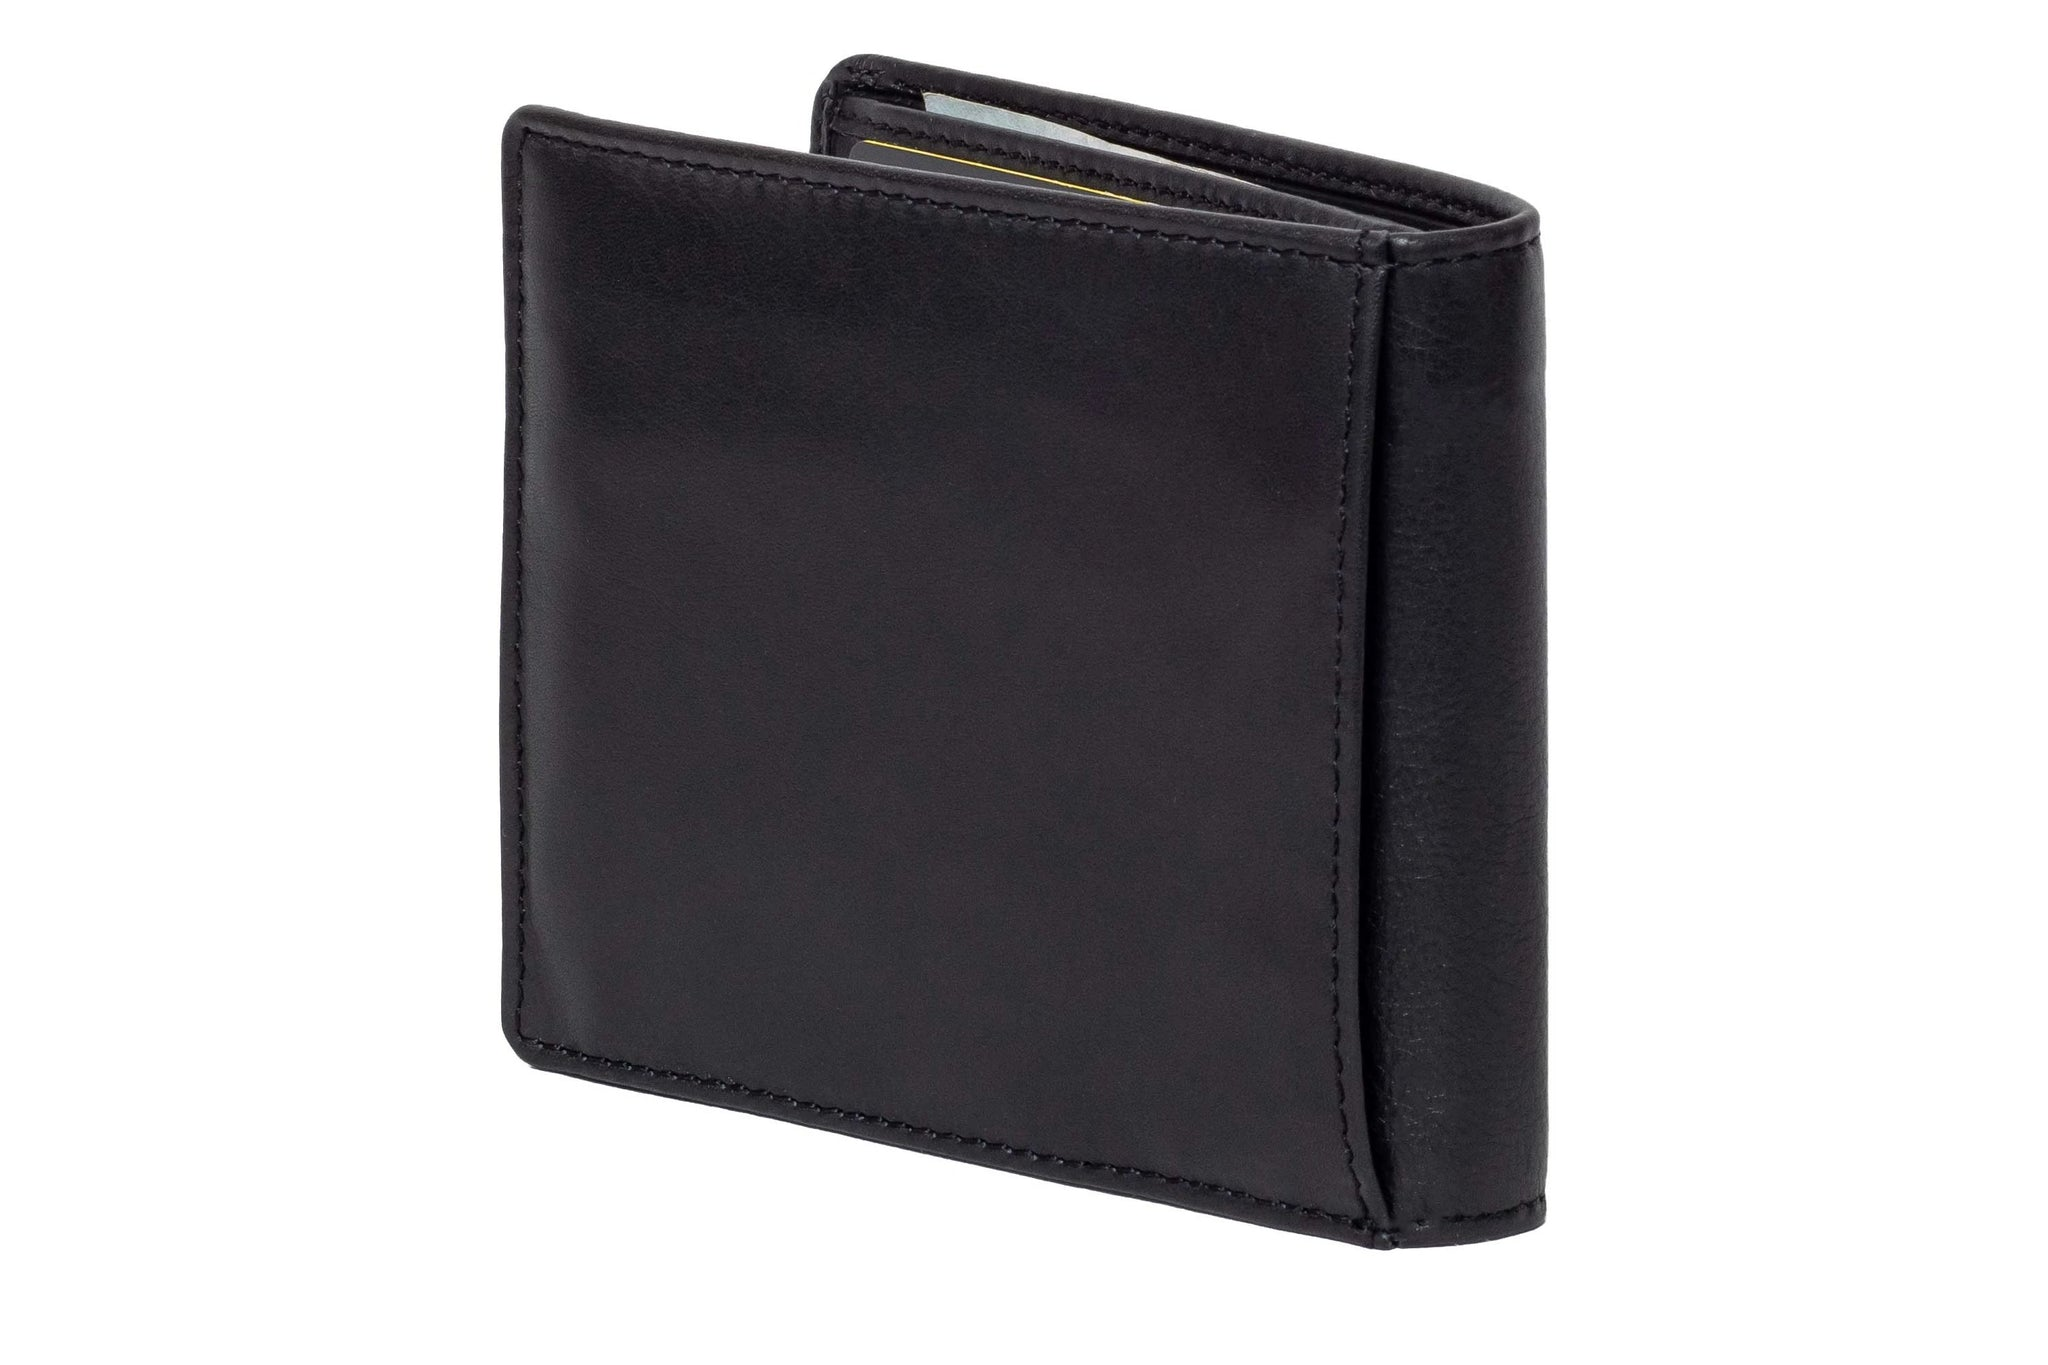 DiLoro Men's Leather Wallets RFID Blocking Removable Card Wallet Black - Back View